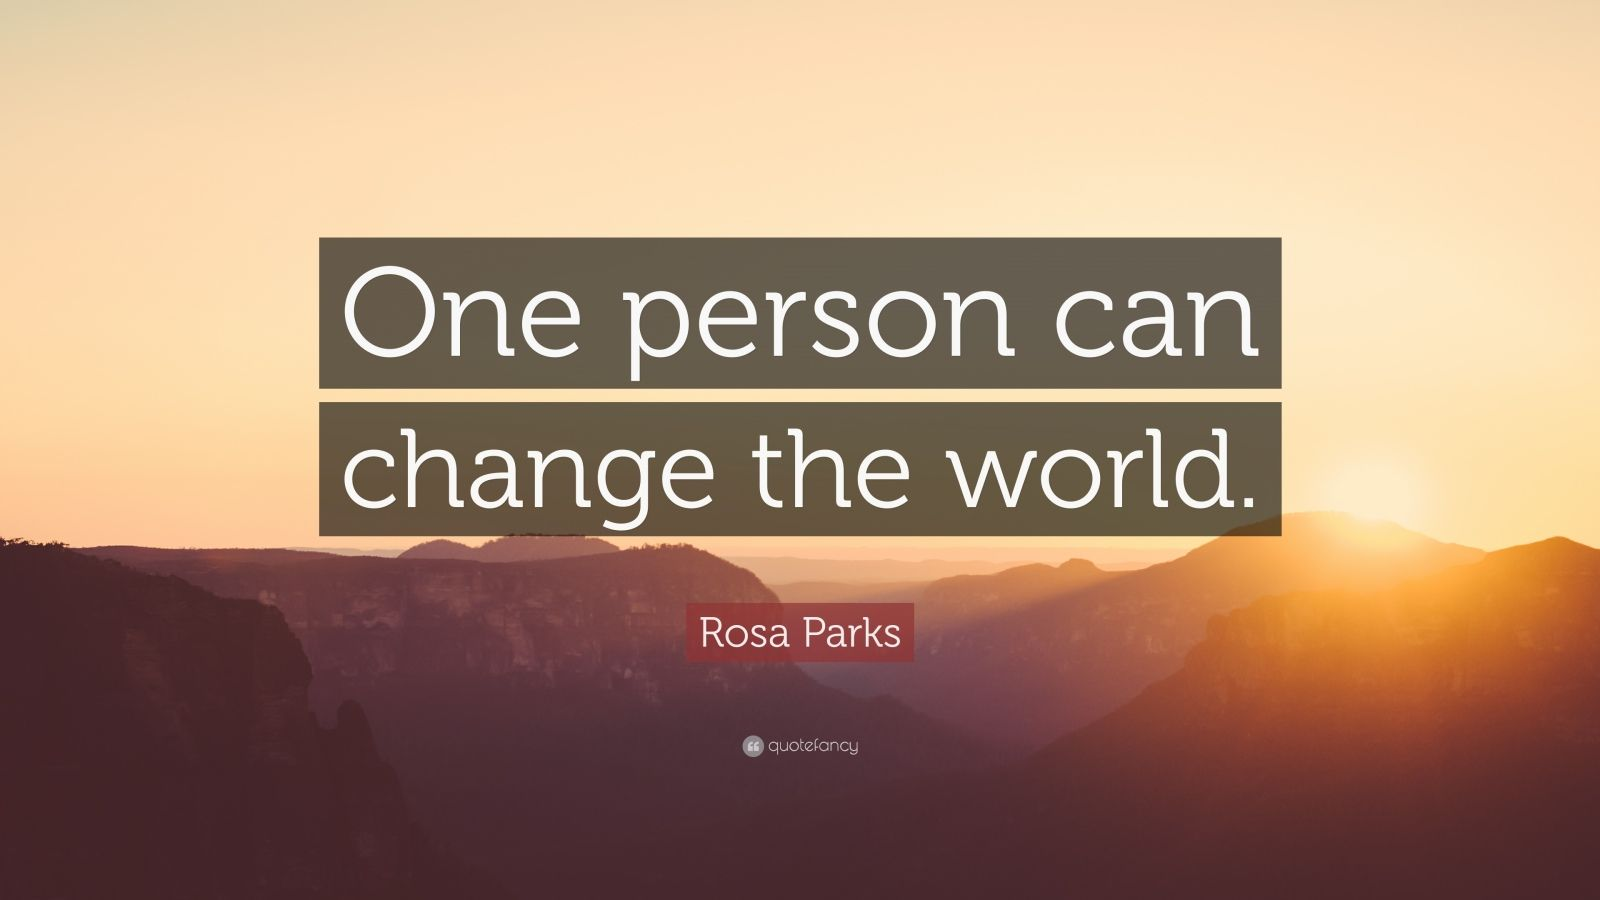 The Power Of One: One Person Can Change The World